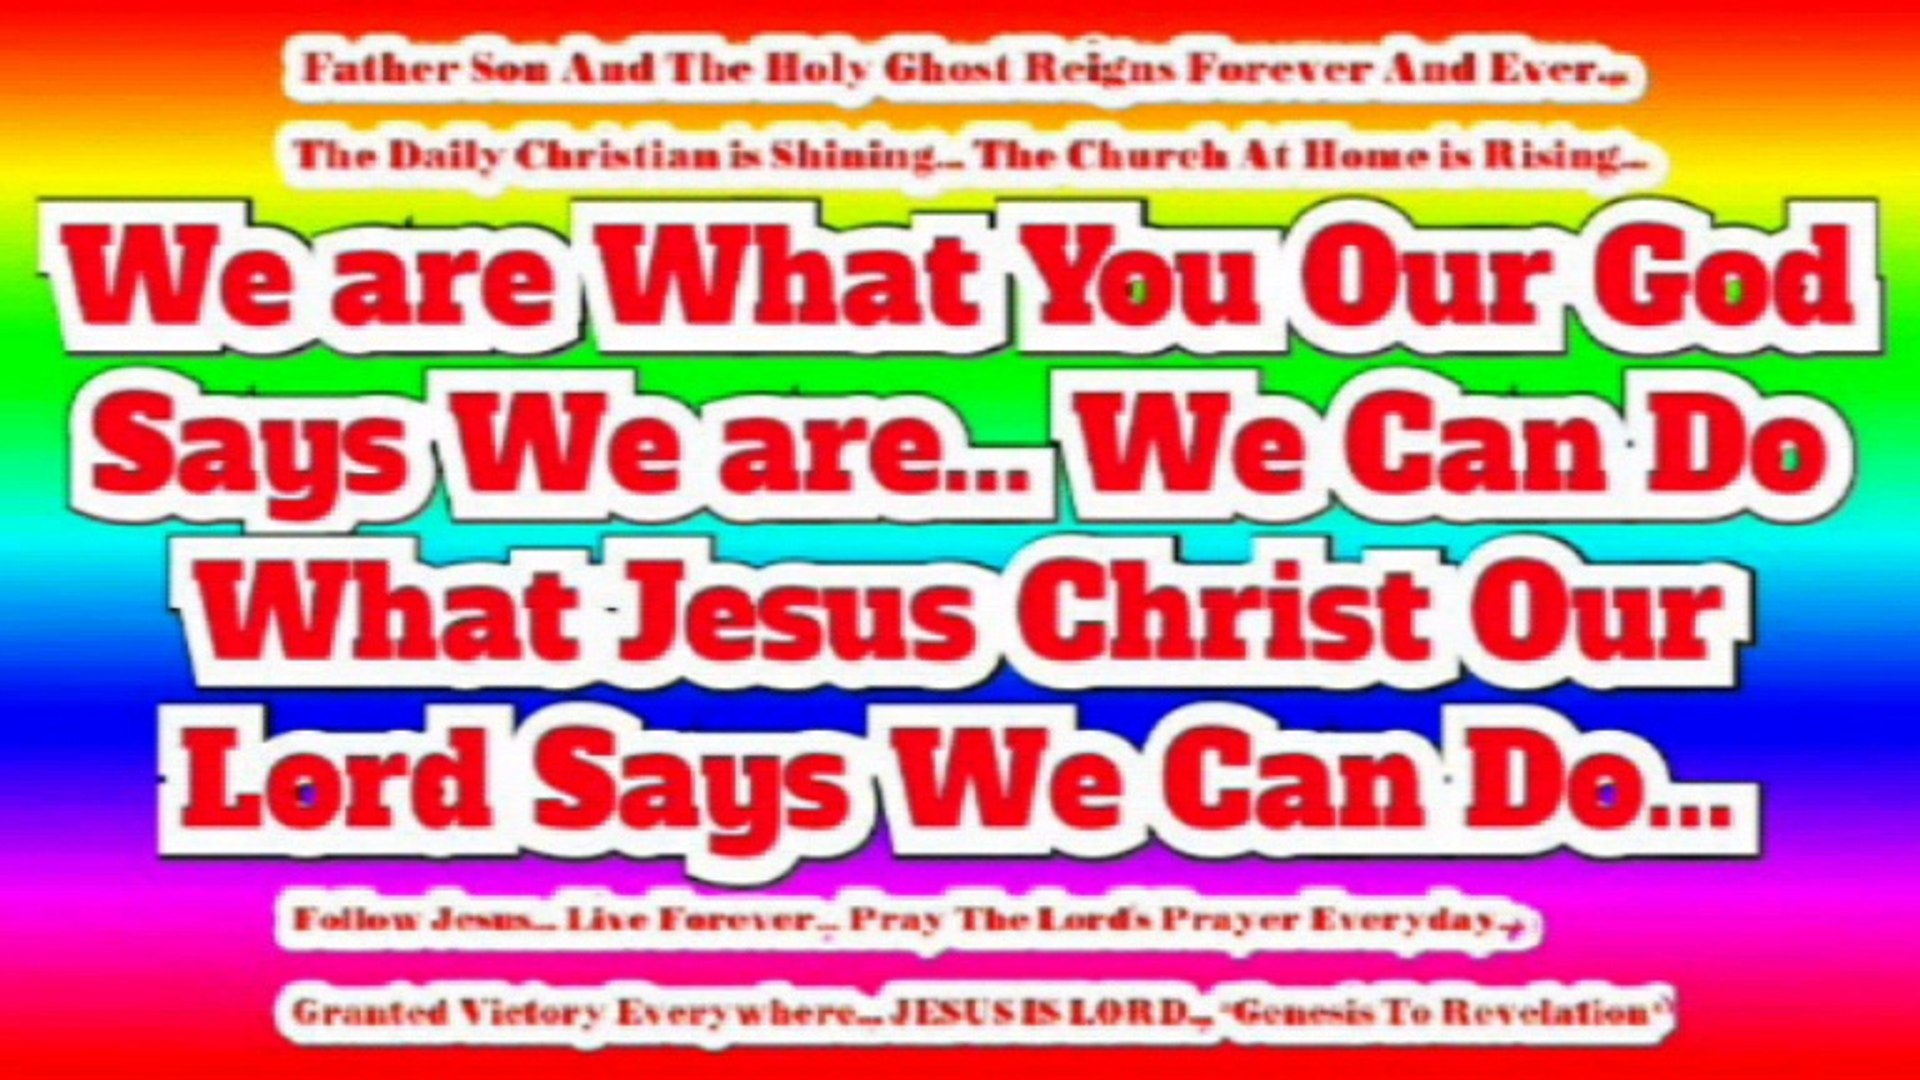 JESUS IS LORD To The Glory of God Our Father... Hallelujah... Amen... Genesis To Revelation